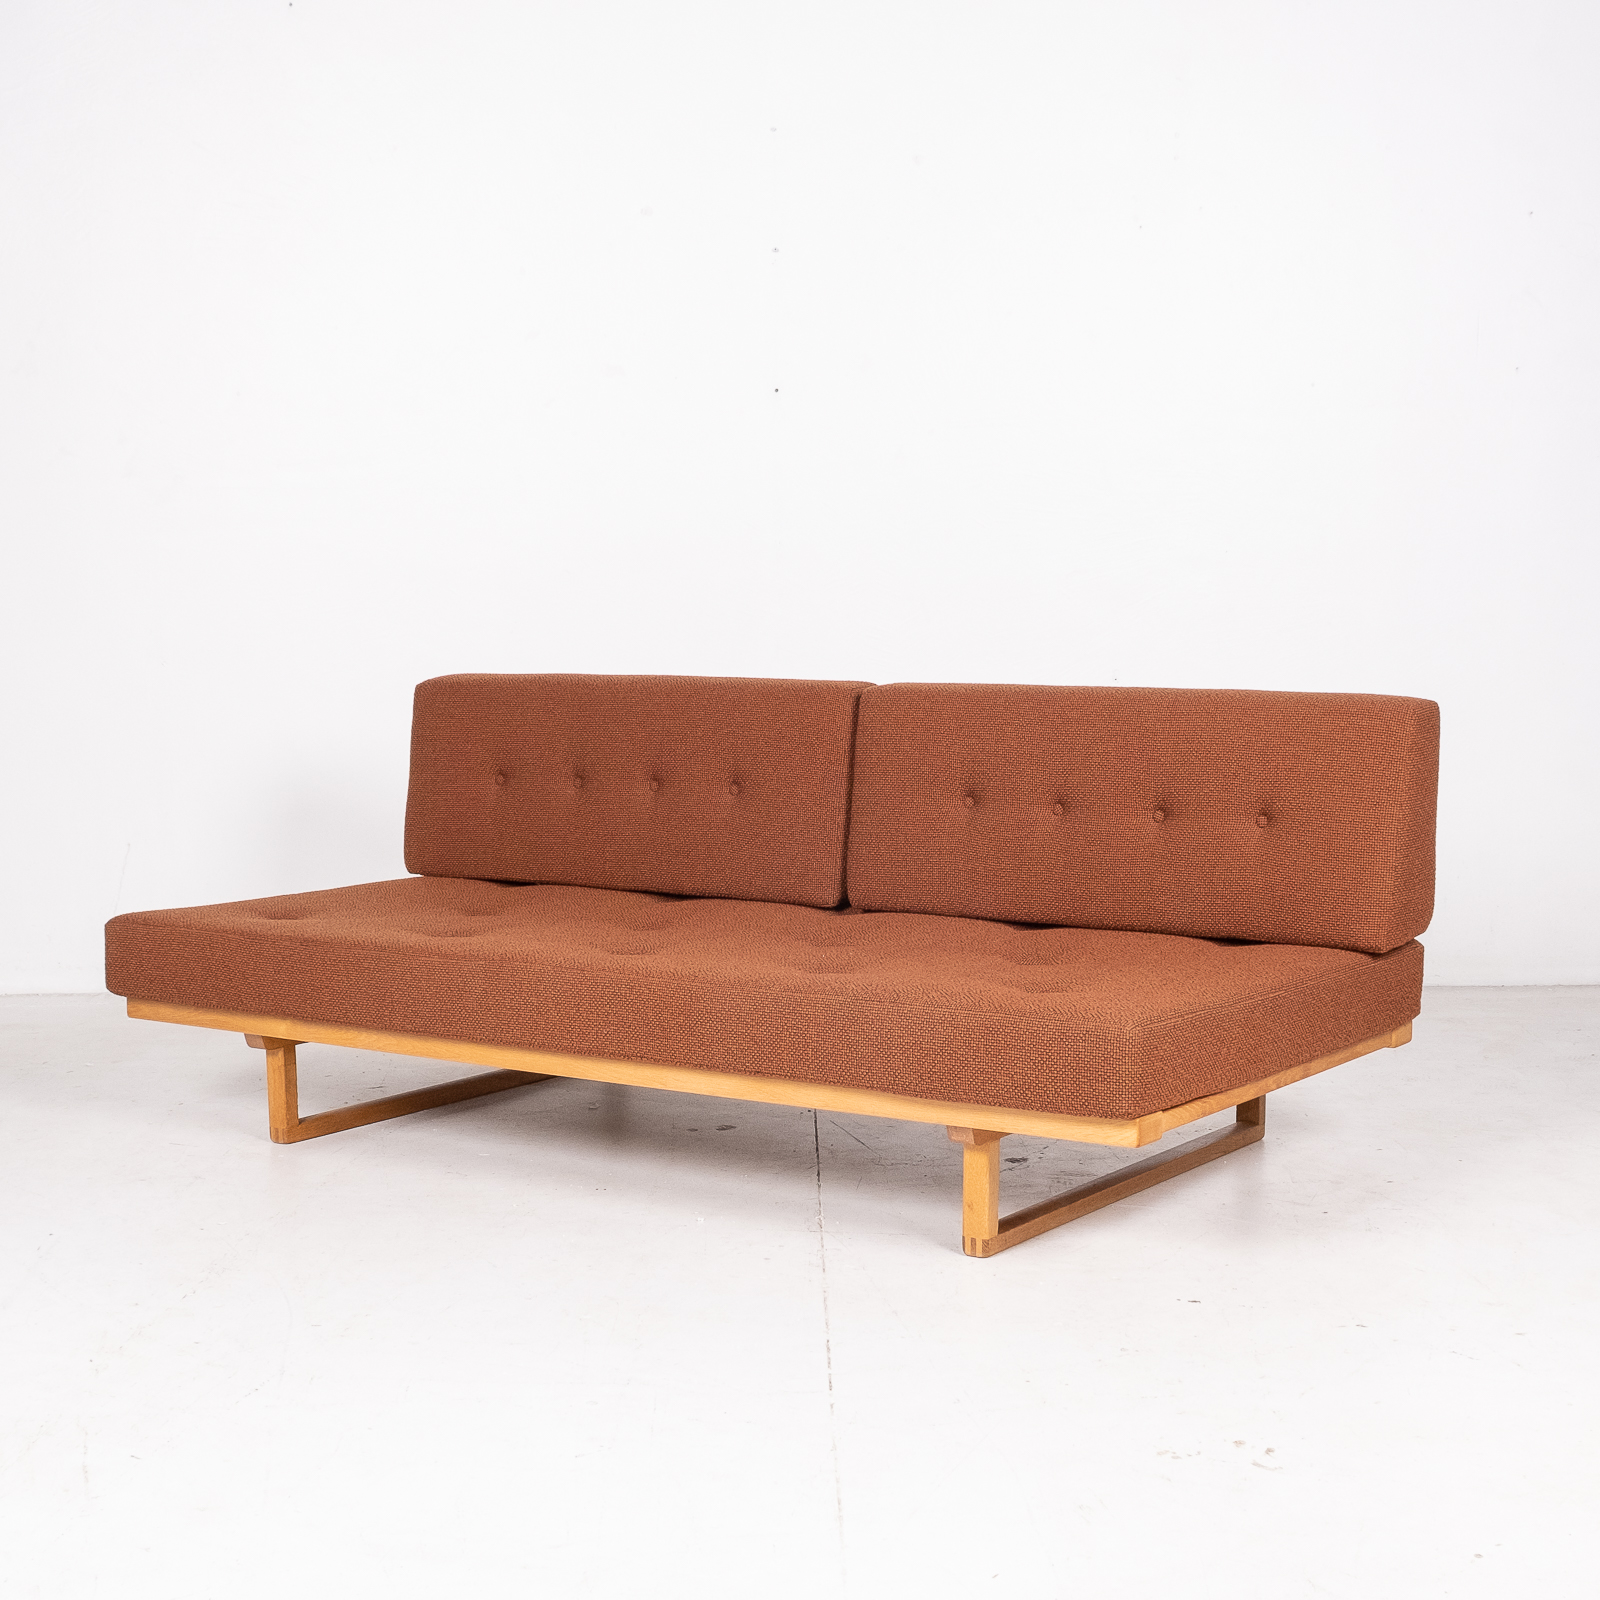 Model 4312 Daybed By Borge Mogensen For Fredericia Stolefabrik In Oak And New Kvadrat Wool Upholstery, Denmark, 1950s7